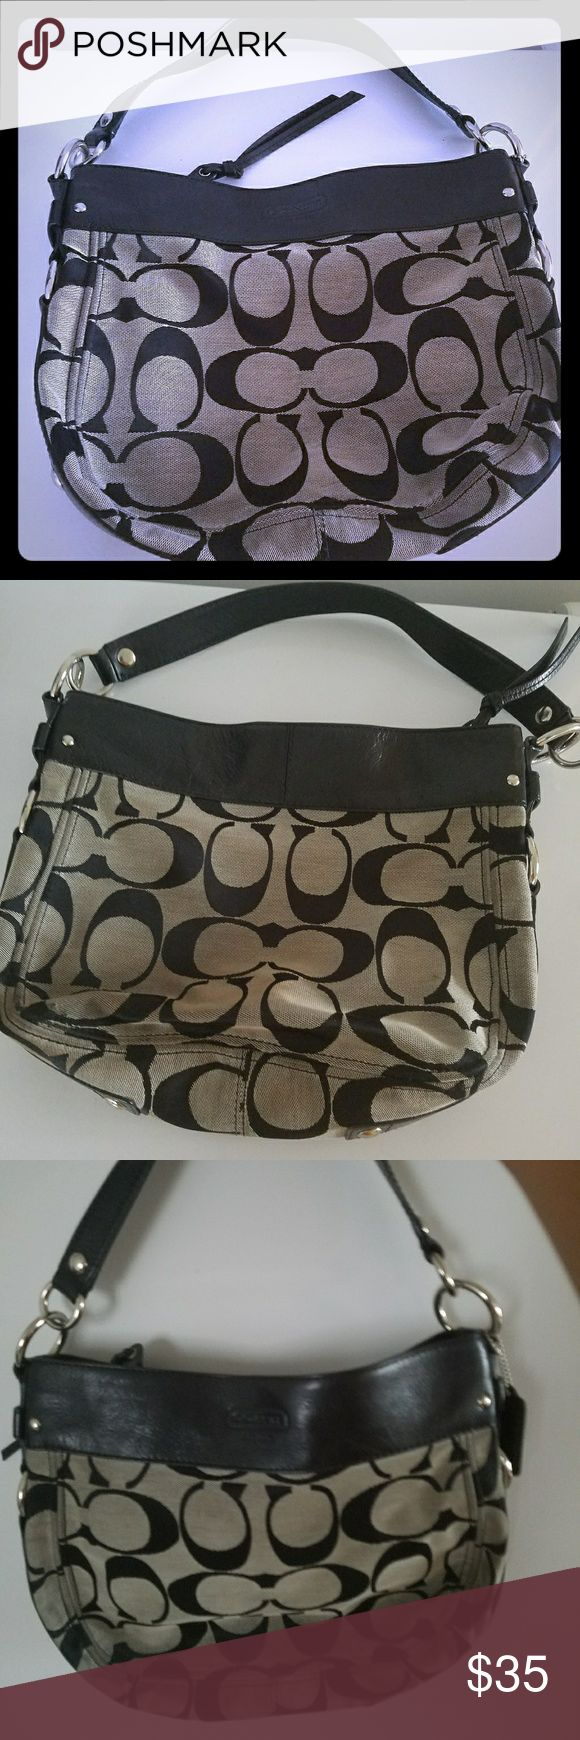 Coach Handbag Used Coach hobo style handbag with Leather trim. Medium size. Some stains are on the back of the purse. Inside has 3 pockets to hold cell phone, if or compact mirror. Coach Bags Hobos